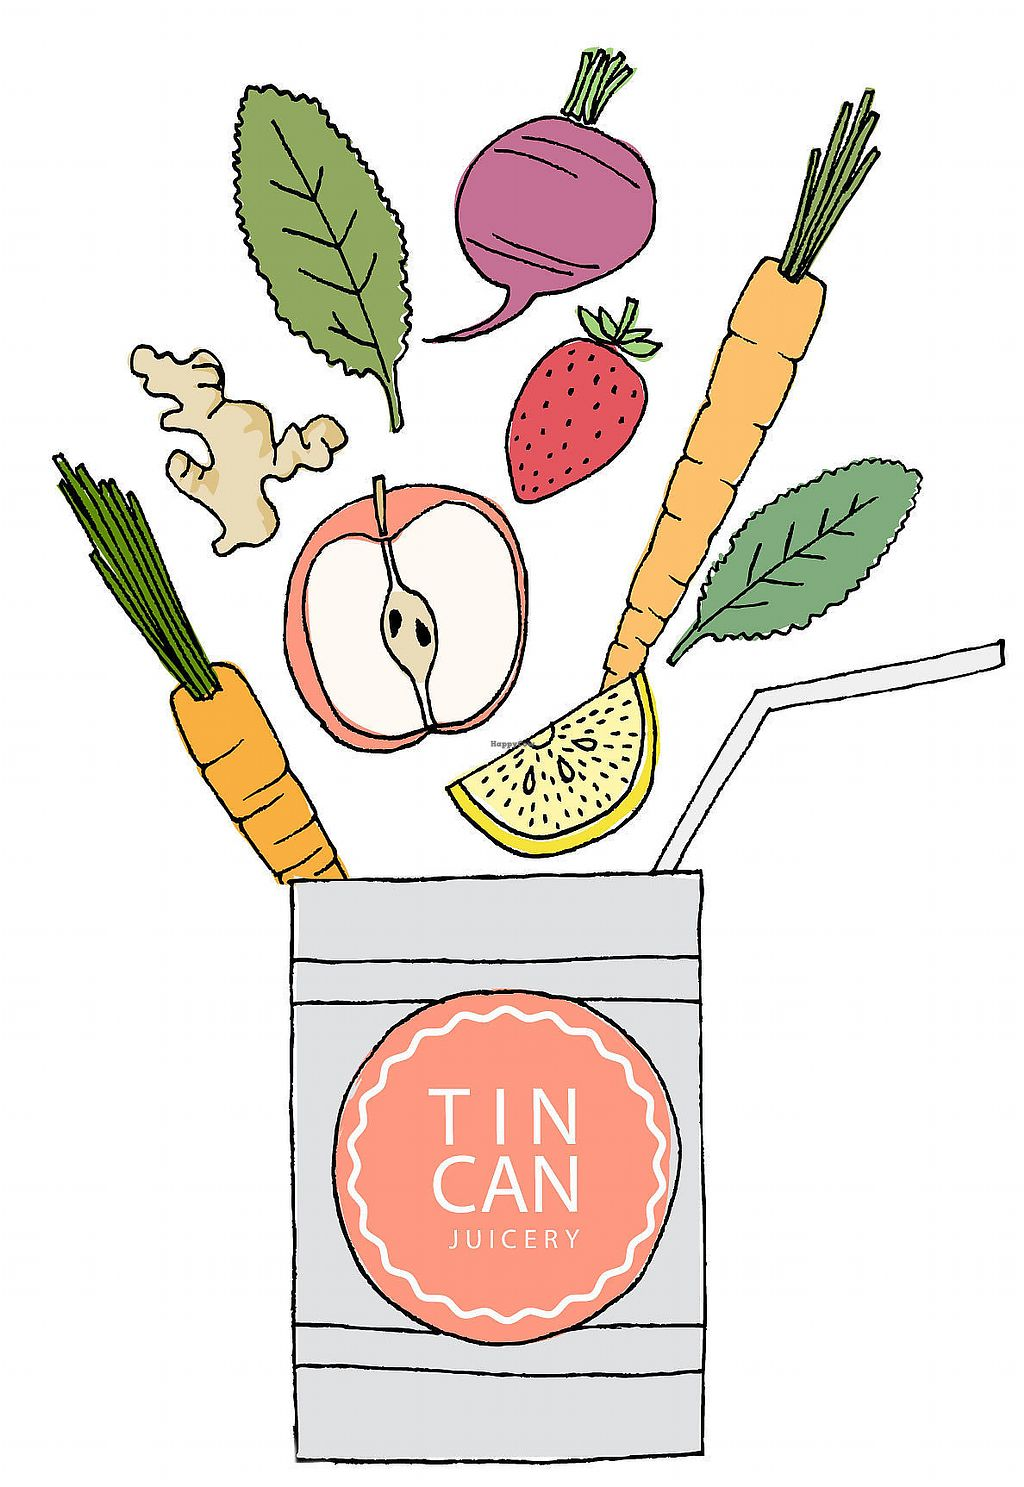 """Photo of Tin Can Juicery  by <a href=""""/members/profile/tincankelly"""">tincankelly</a> <br/>Tin Can Juicery!  <br/> December 29, 2017  - <a href='/contact/abuse/image/108144/340544'>Report</a>"""